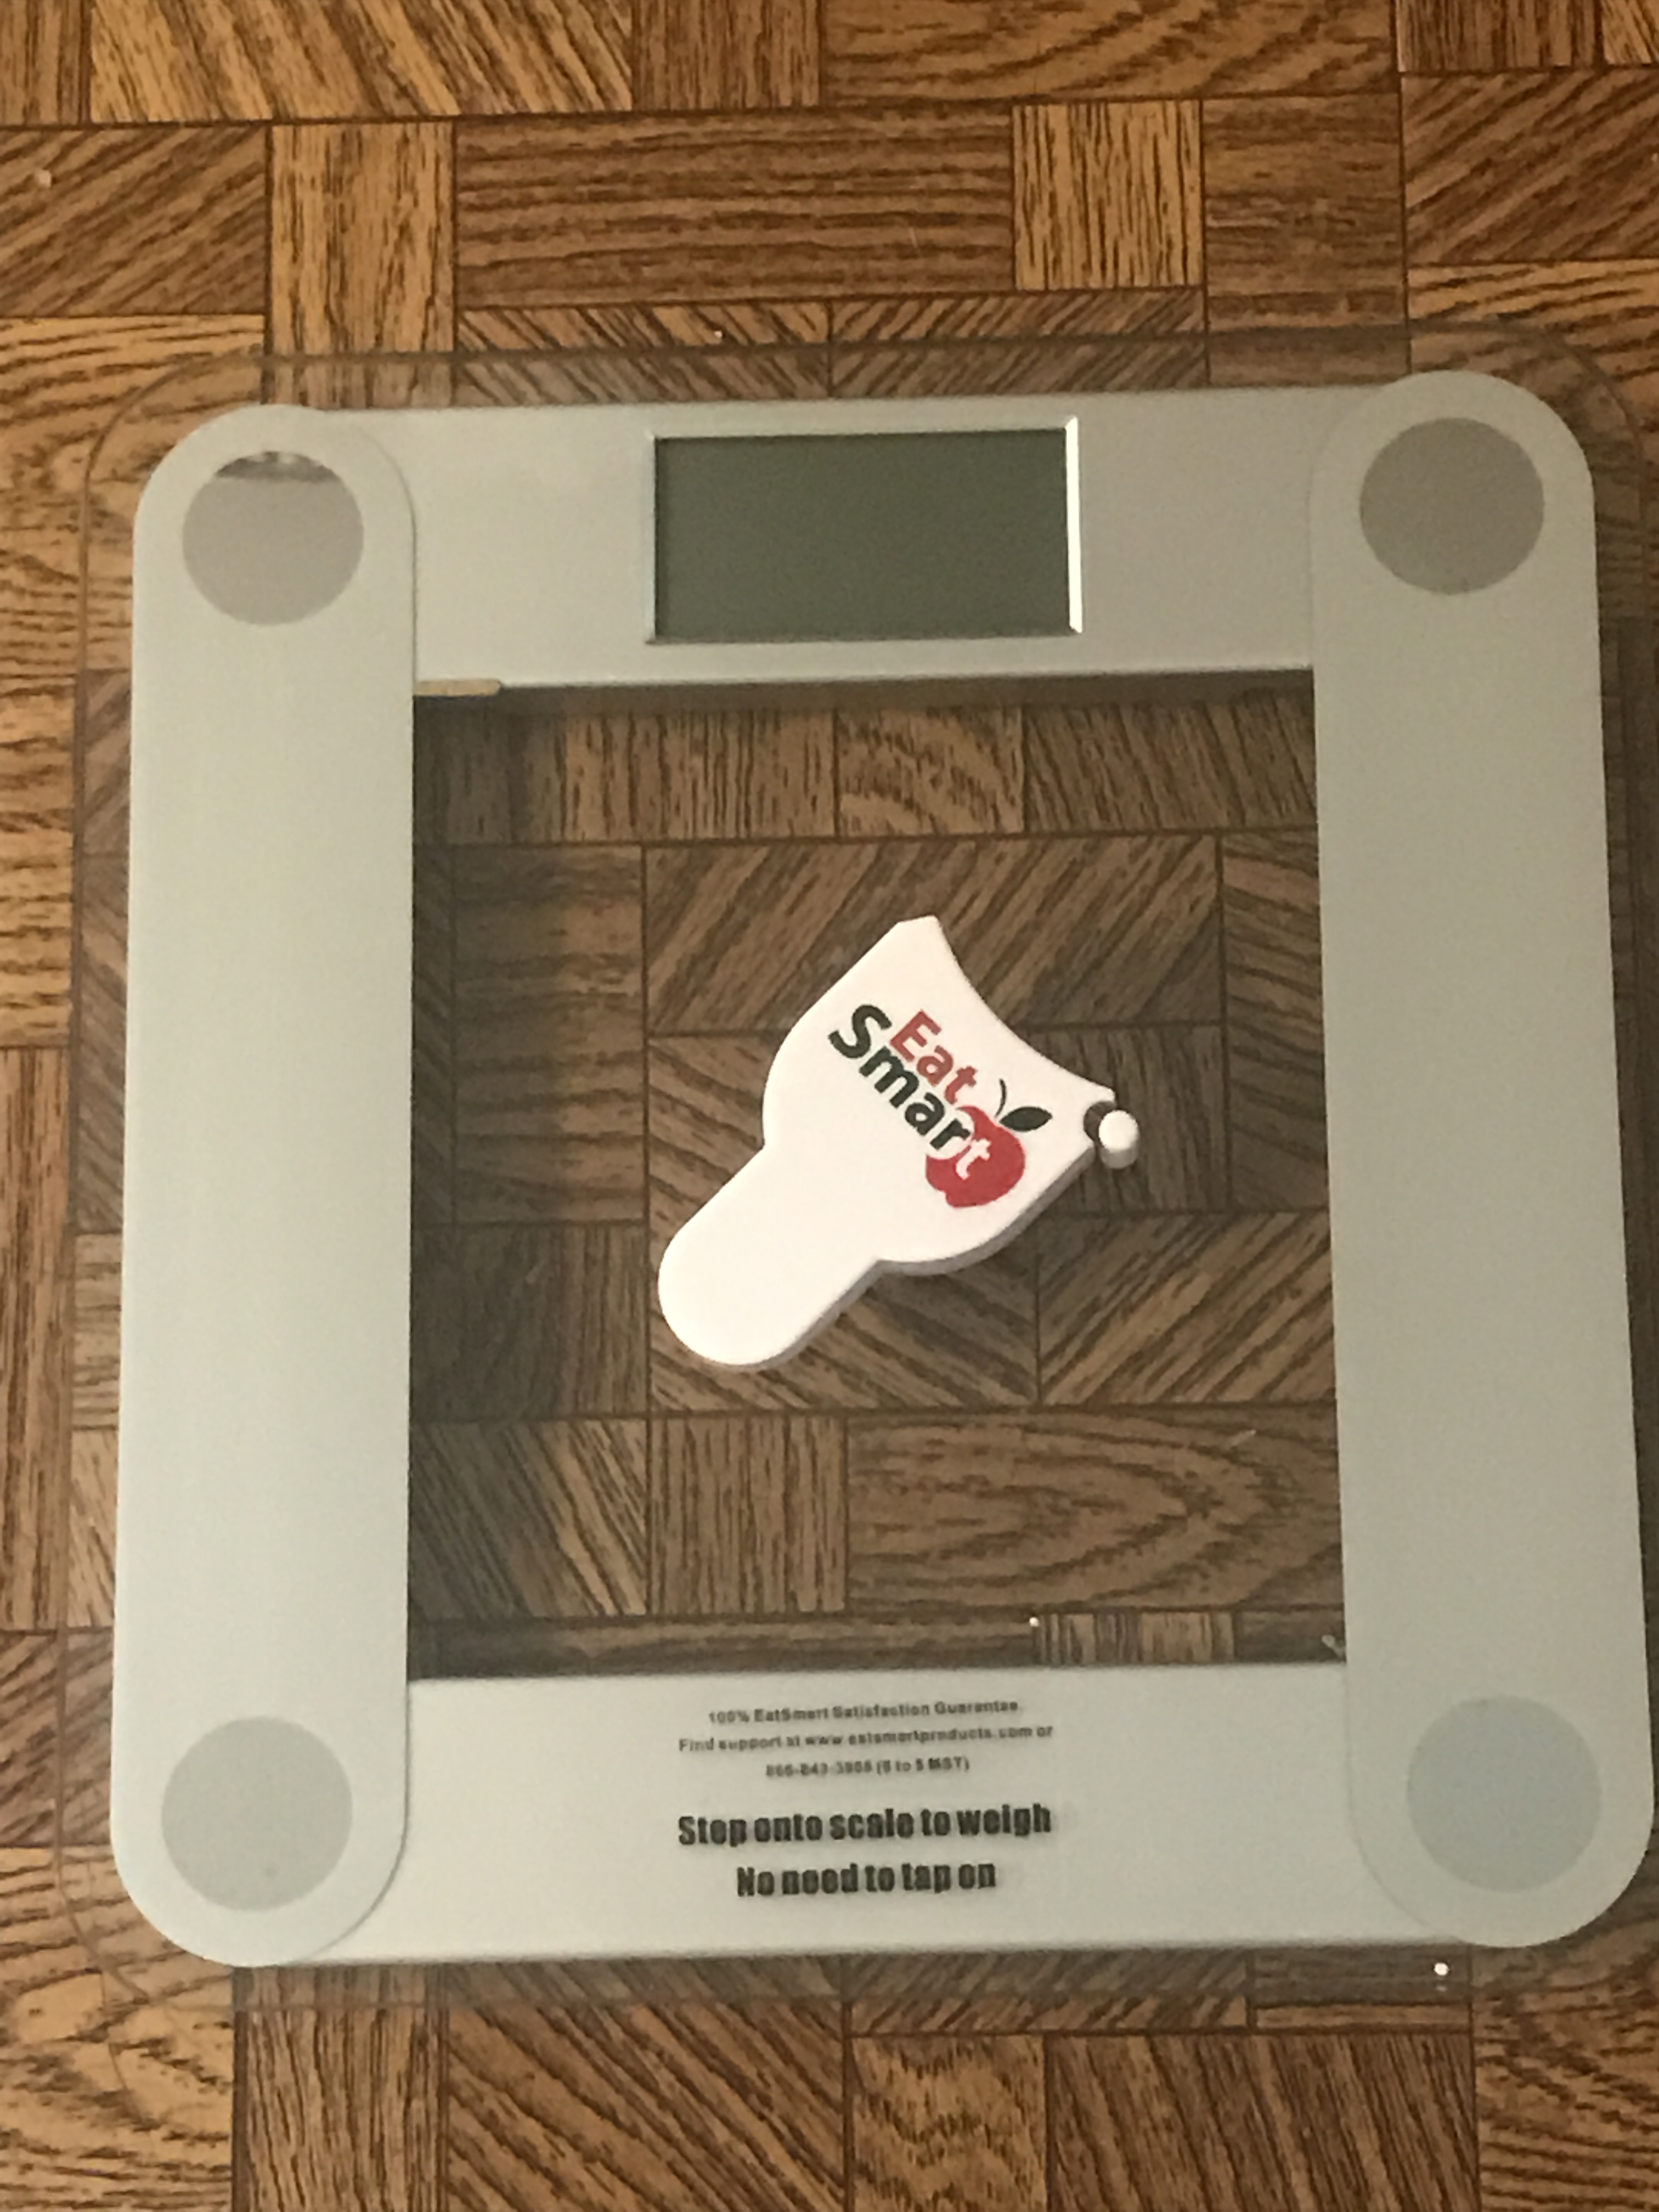 Keep track of your weight loss with EatSmart scale – reviewerpam